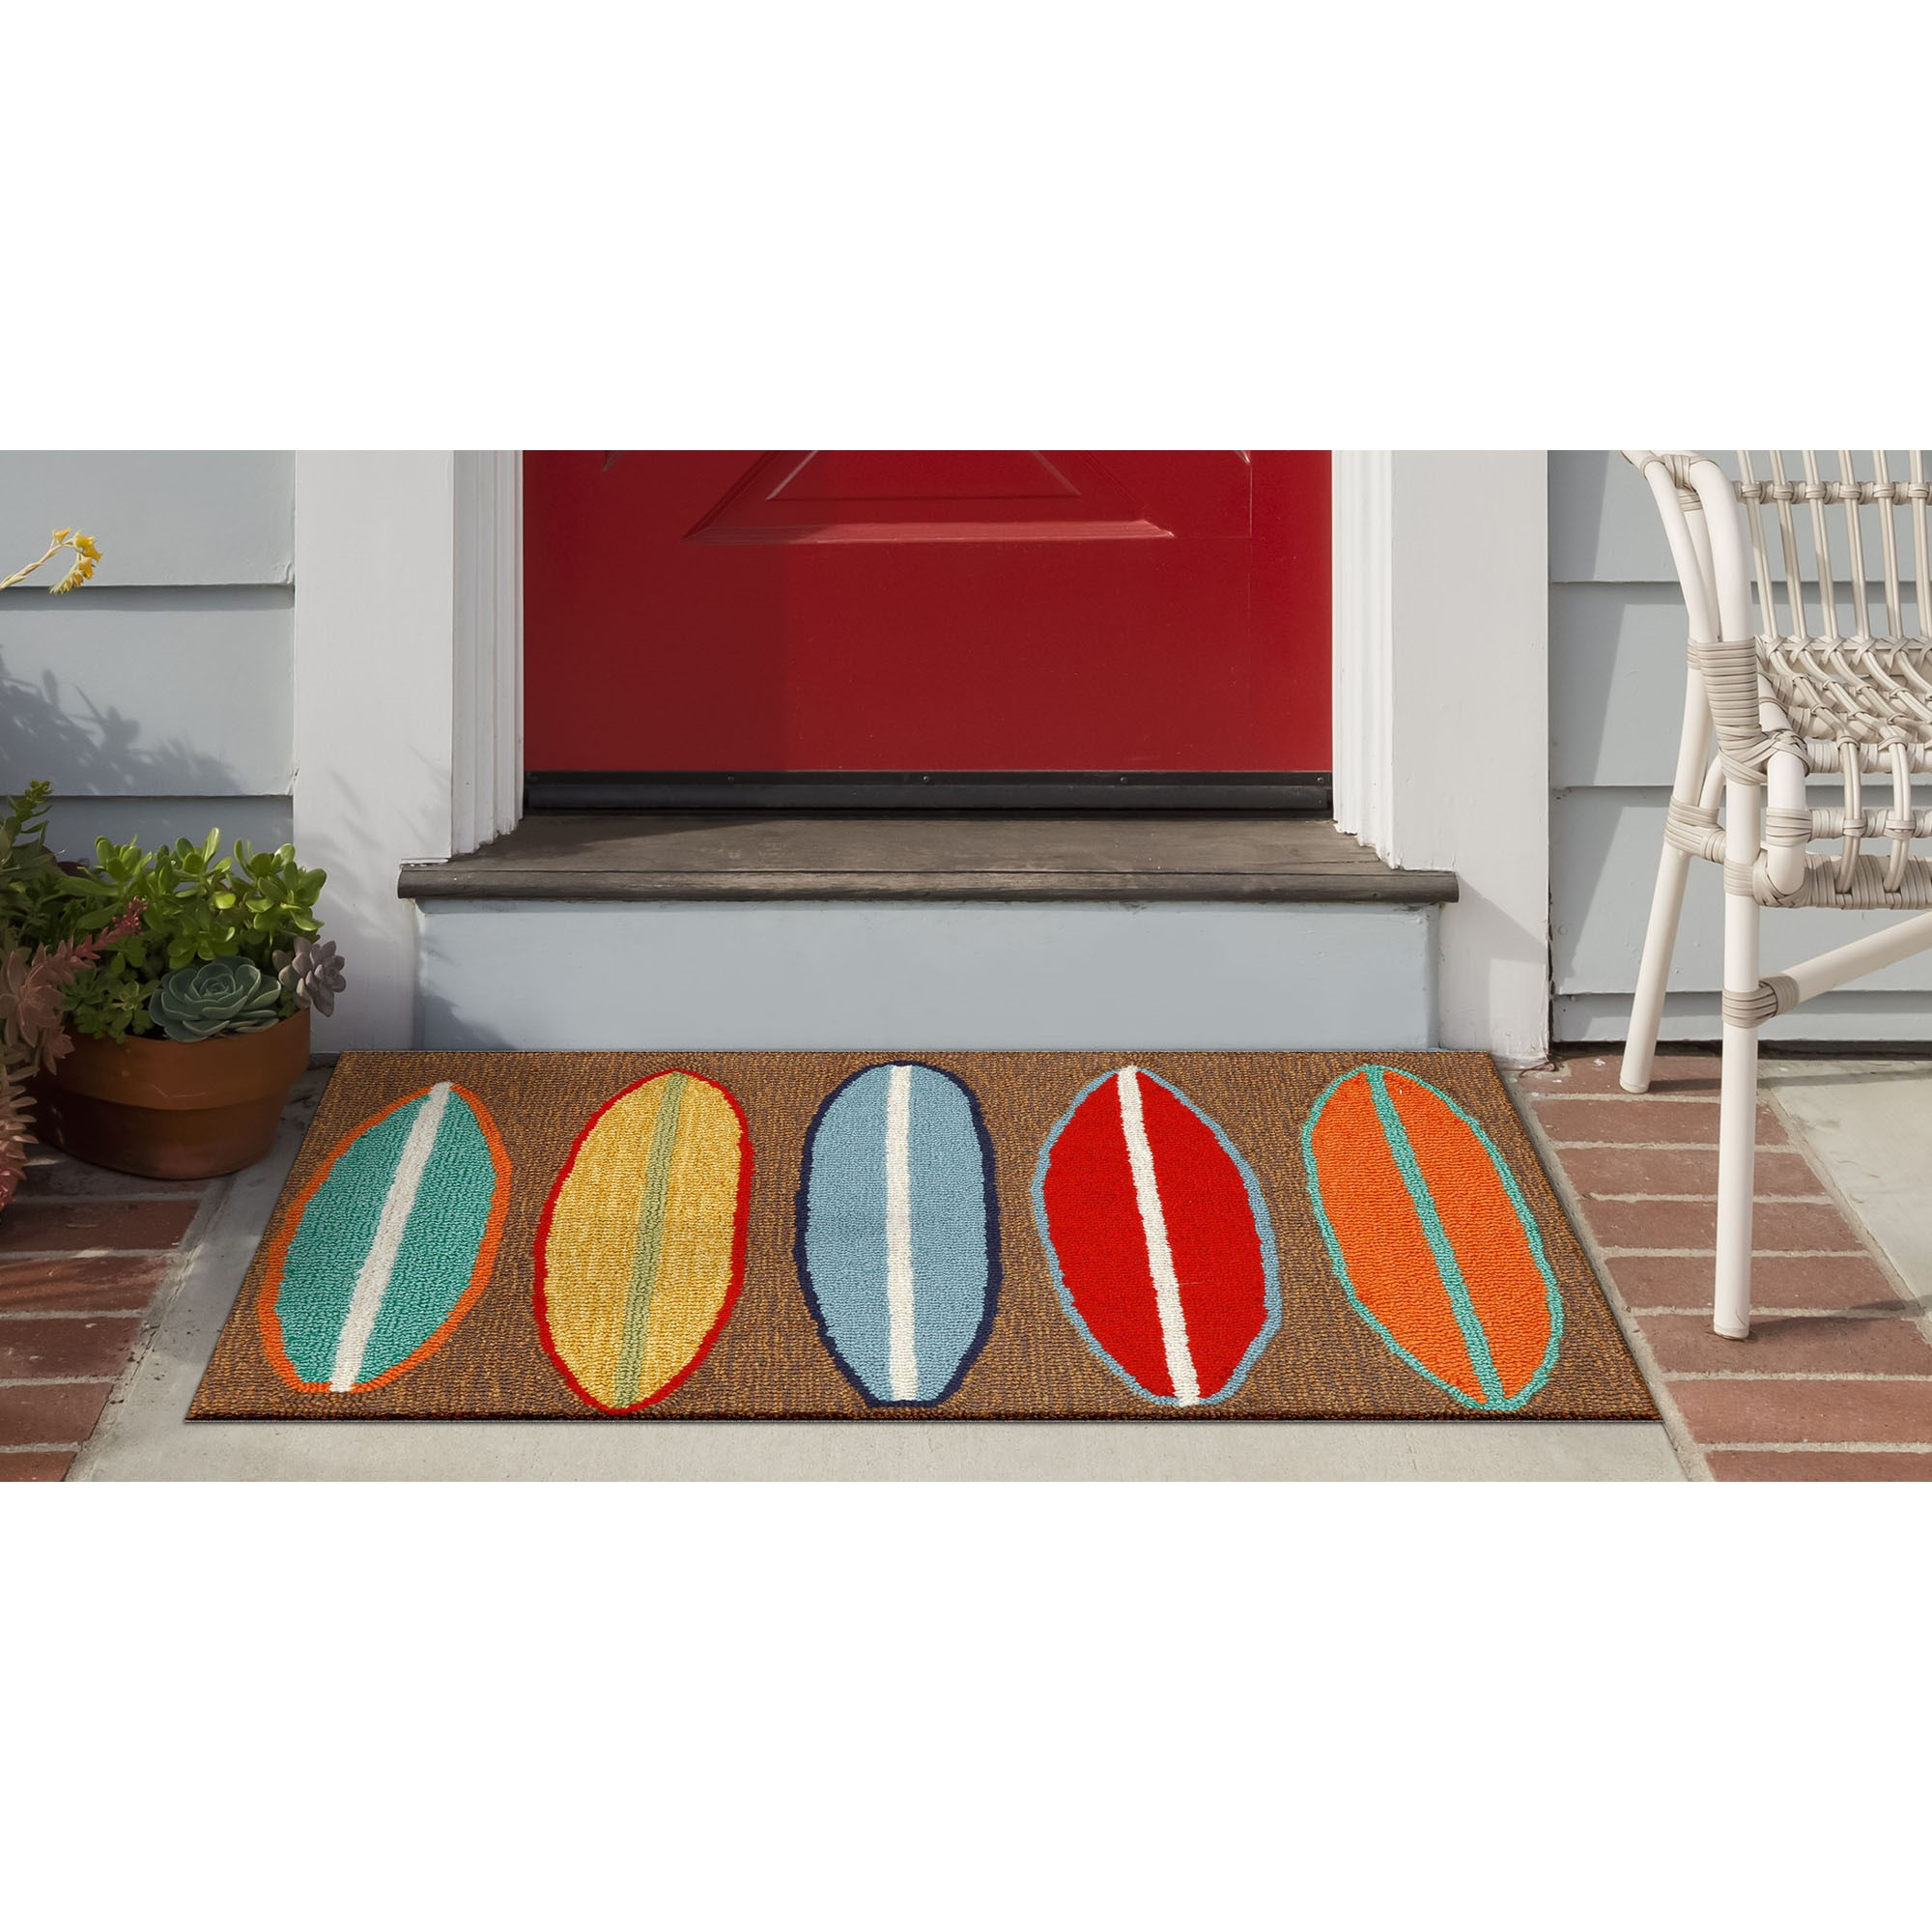 Image of: Liora Manne Front Porch Surfboards Rugs Rugs Direct